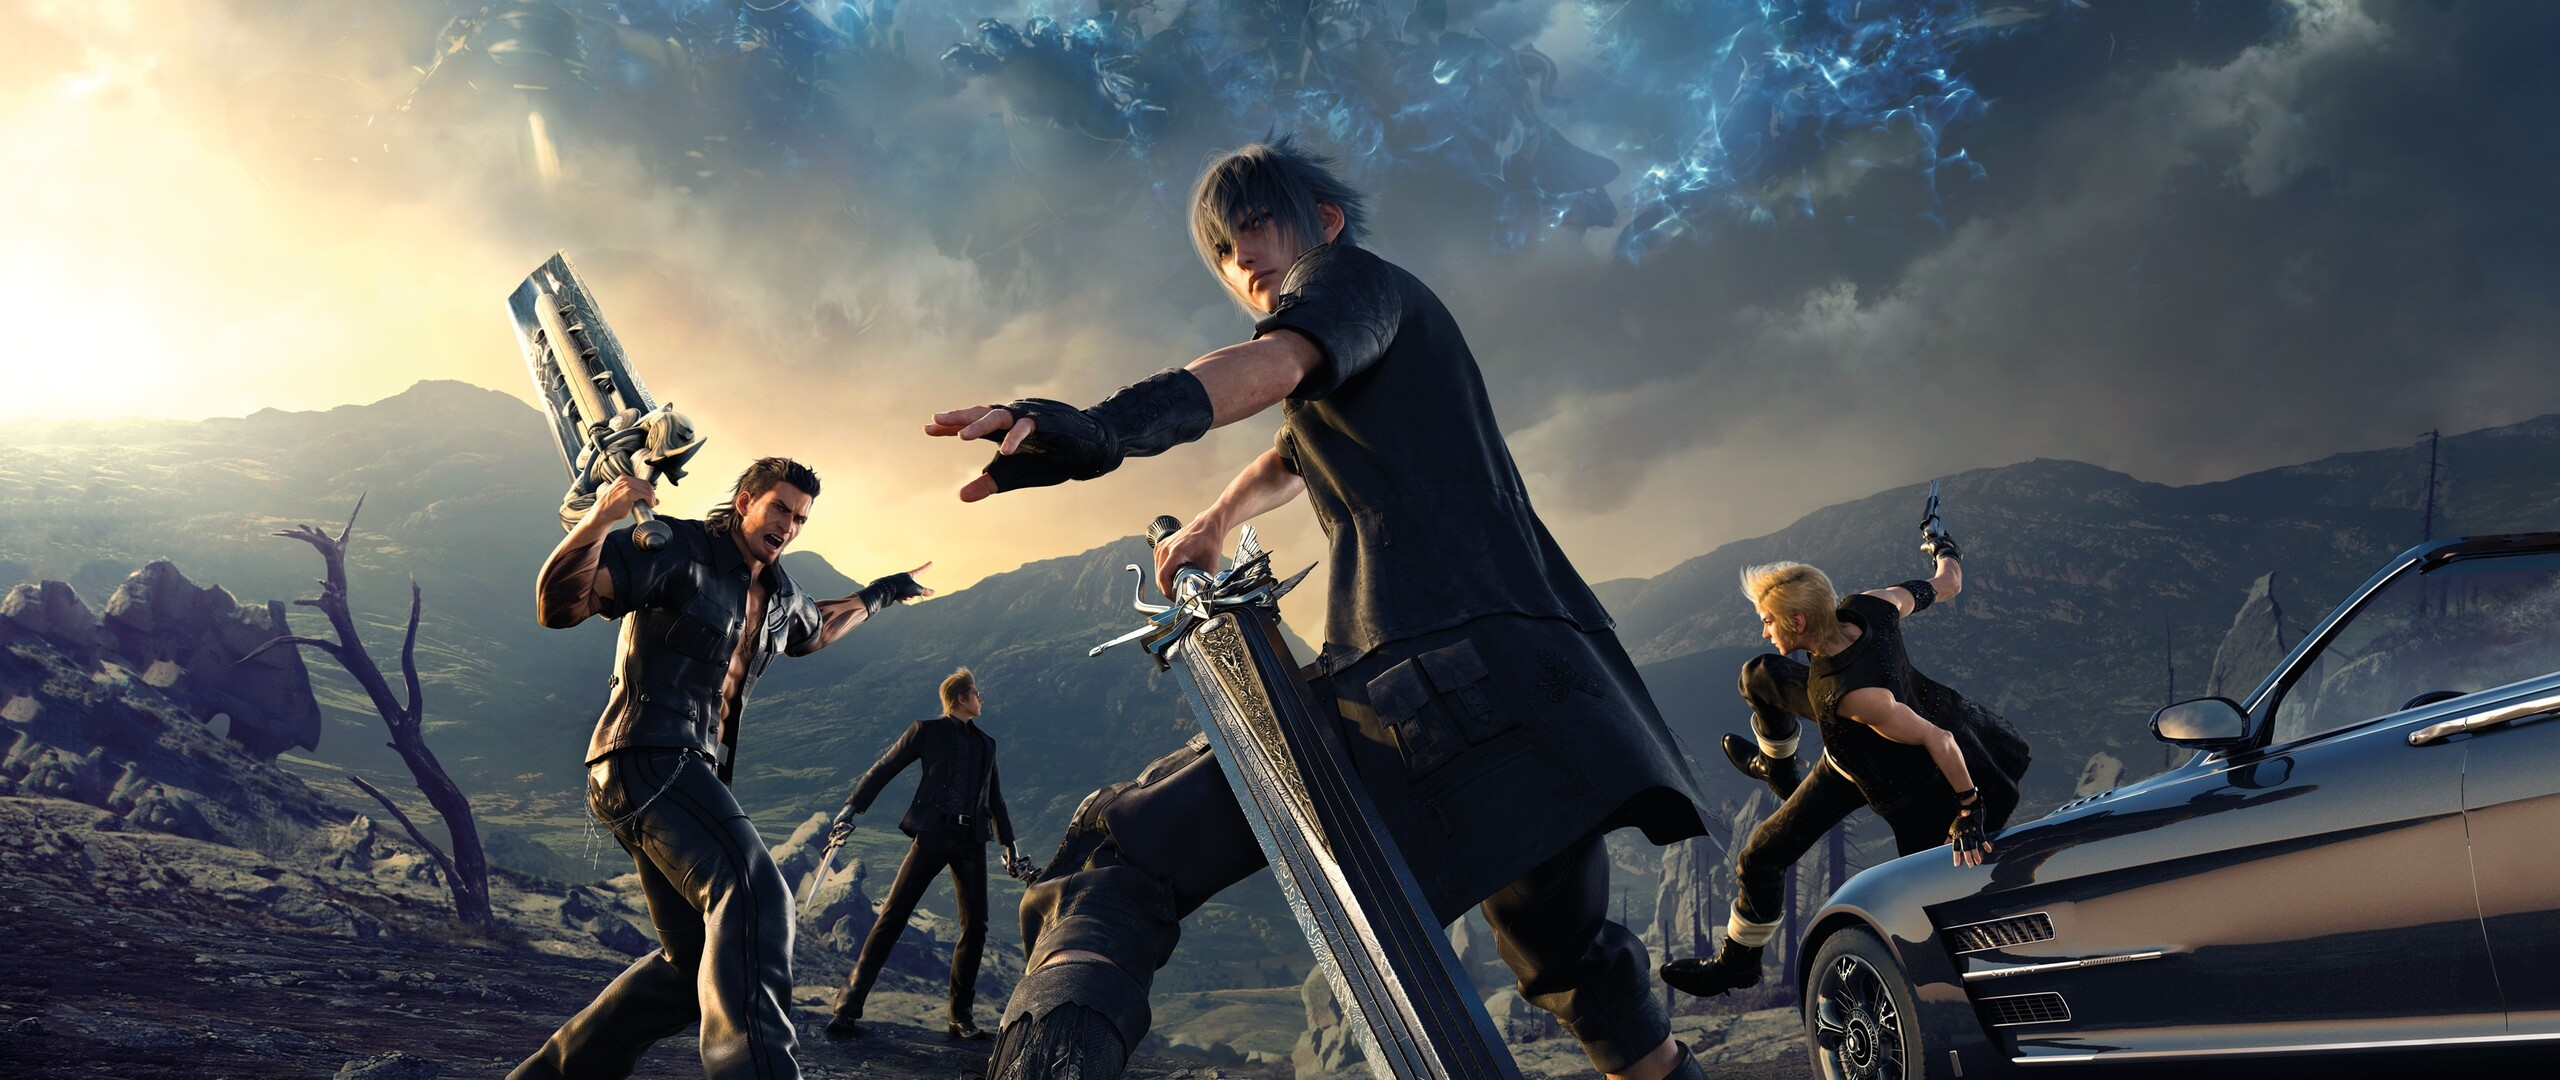 Final Fantasy Xv 4k Ultra Hd Wallpaper: 2560x1080 Final Fantasy XV PS4 2560x1080 Resolution HD 4k